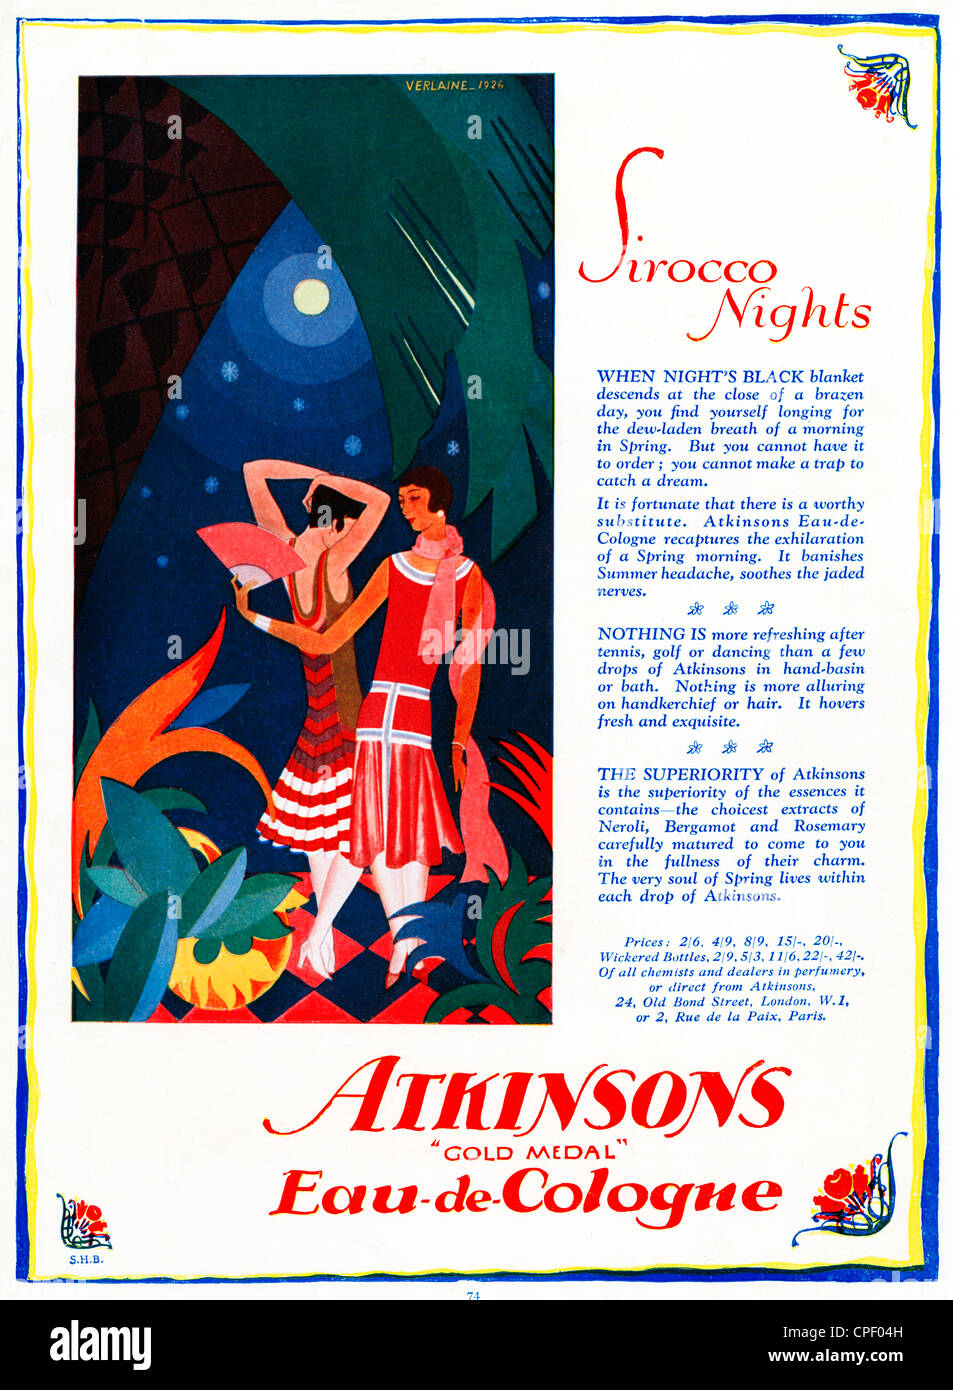 Sirocco Nights, Eau De Cologne, 1928 advert for Atkinsons scent, which recaptures the exhilaration of a Spring morning - Stock Image